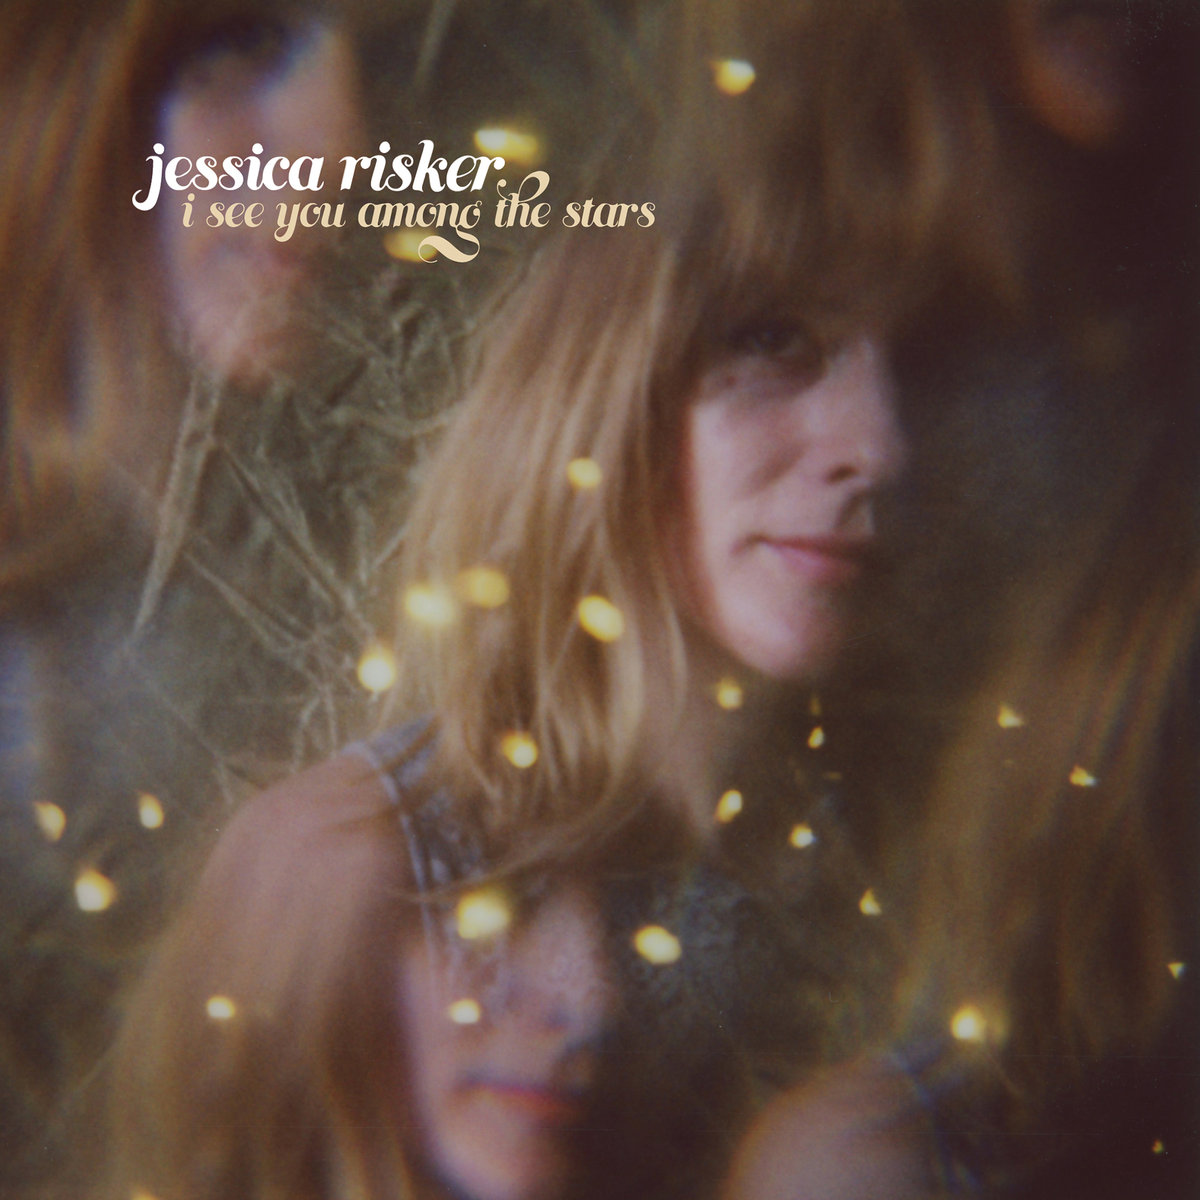 Jessica Risker - I See You Among The StarsMay 4thA dreamy and gentle guide into downtime, Risker takes you through prescribed introspection. If you can pull yourself through the sonic cleanse of I See You Among The Stars to hear her words a bit more intently, you will find she sings of concepts with an equally soothing familiarity.-LPL